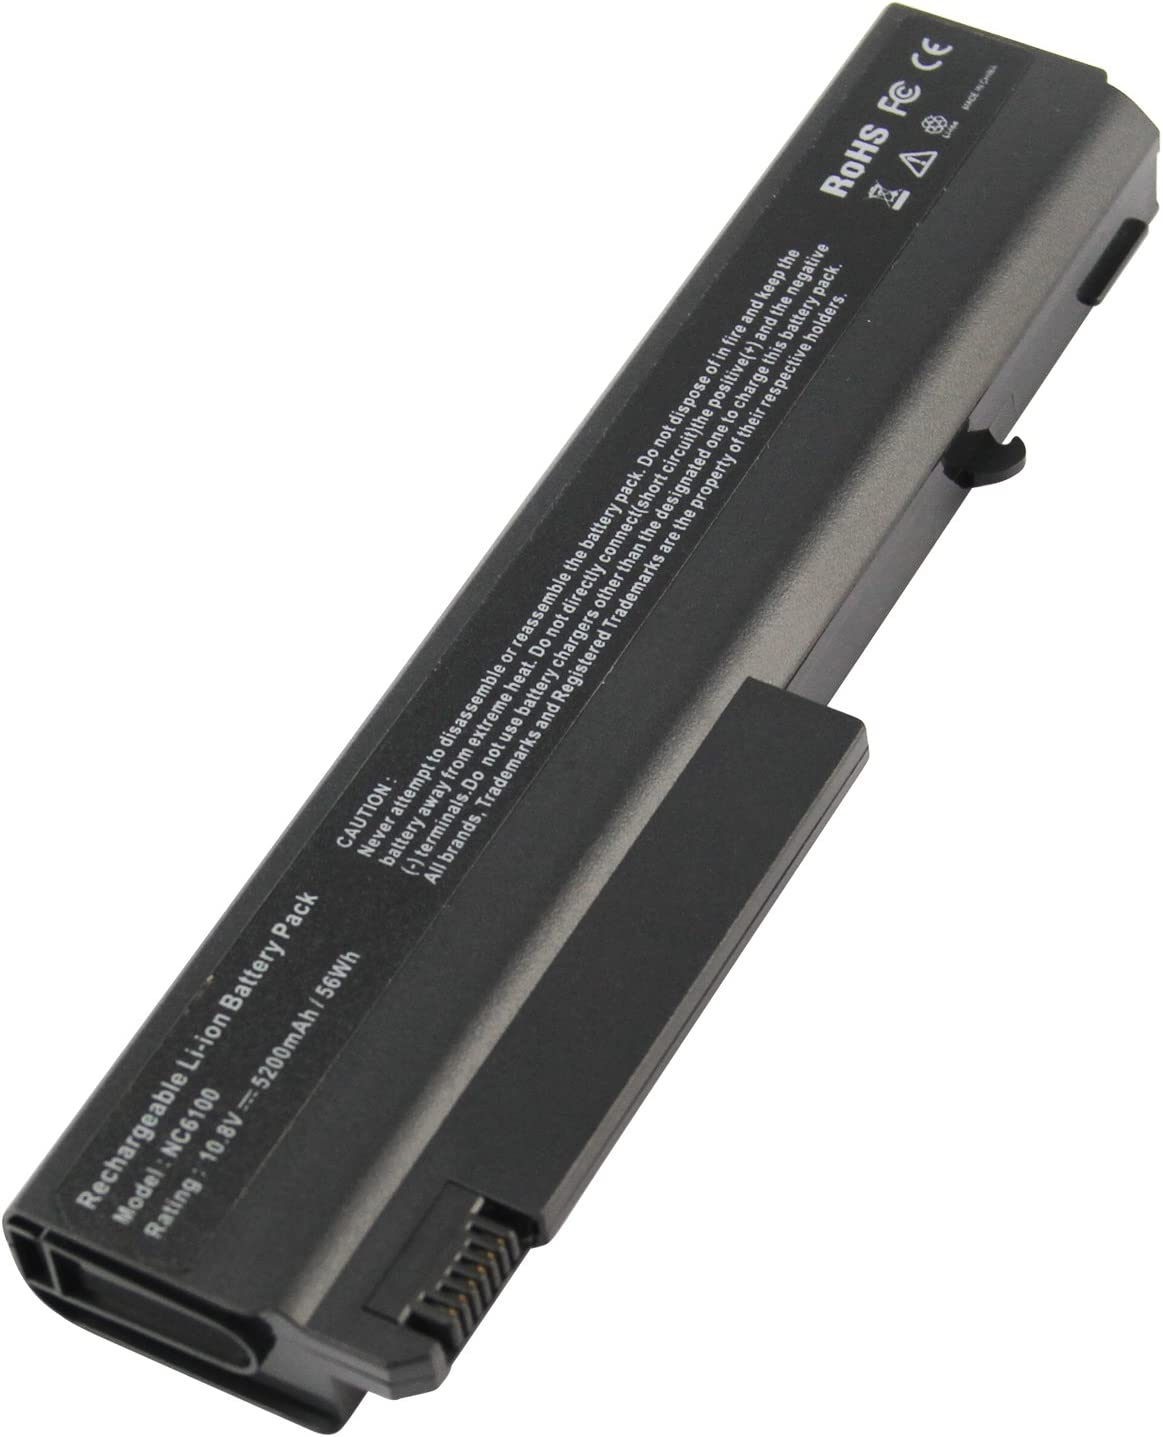 AC Doctor INC Laptop Battery for Hp Compaq Business Notebook NC6100 NC6200 NC6400 NX6000 NX6100 NX6110 NX6310 NX5100 NX6710, 5200mAh/10.8V/6-Cell